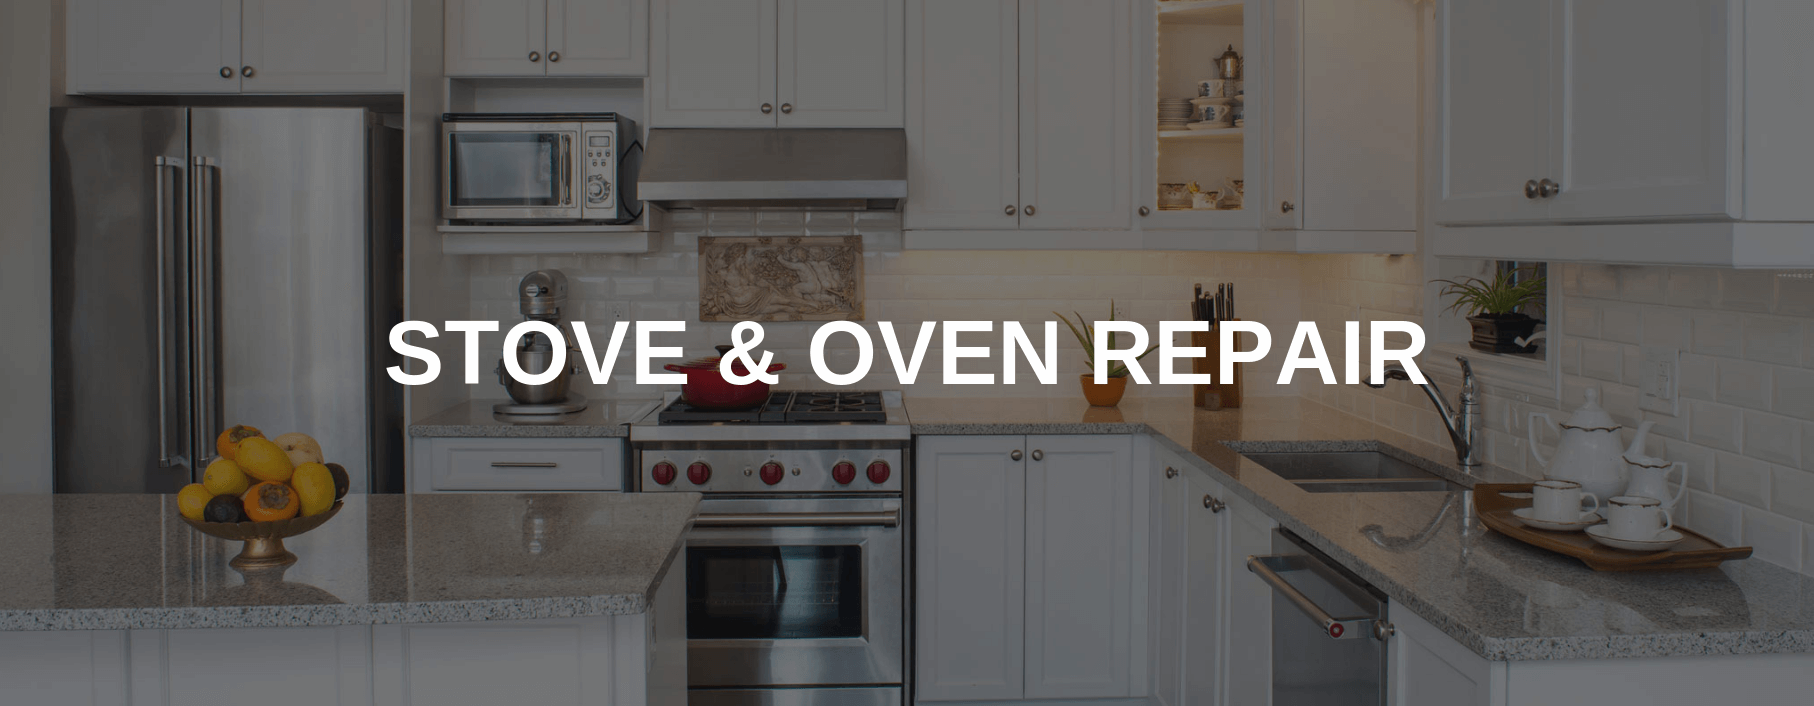 stove repair hartford